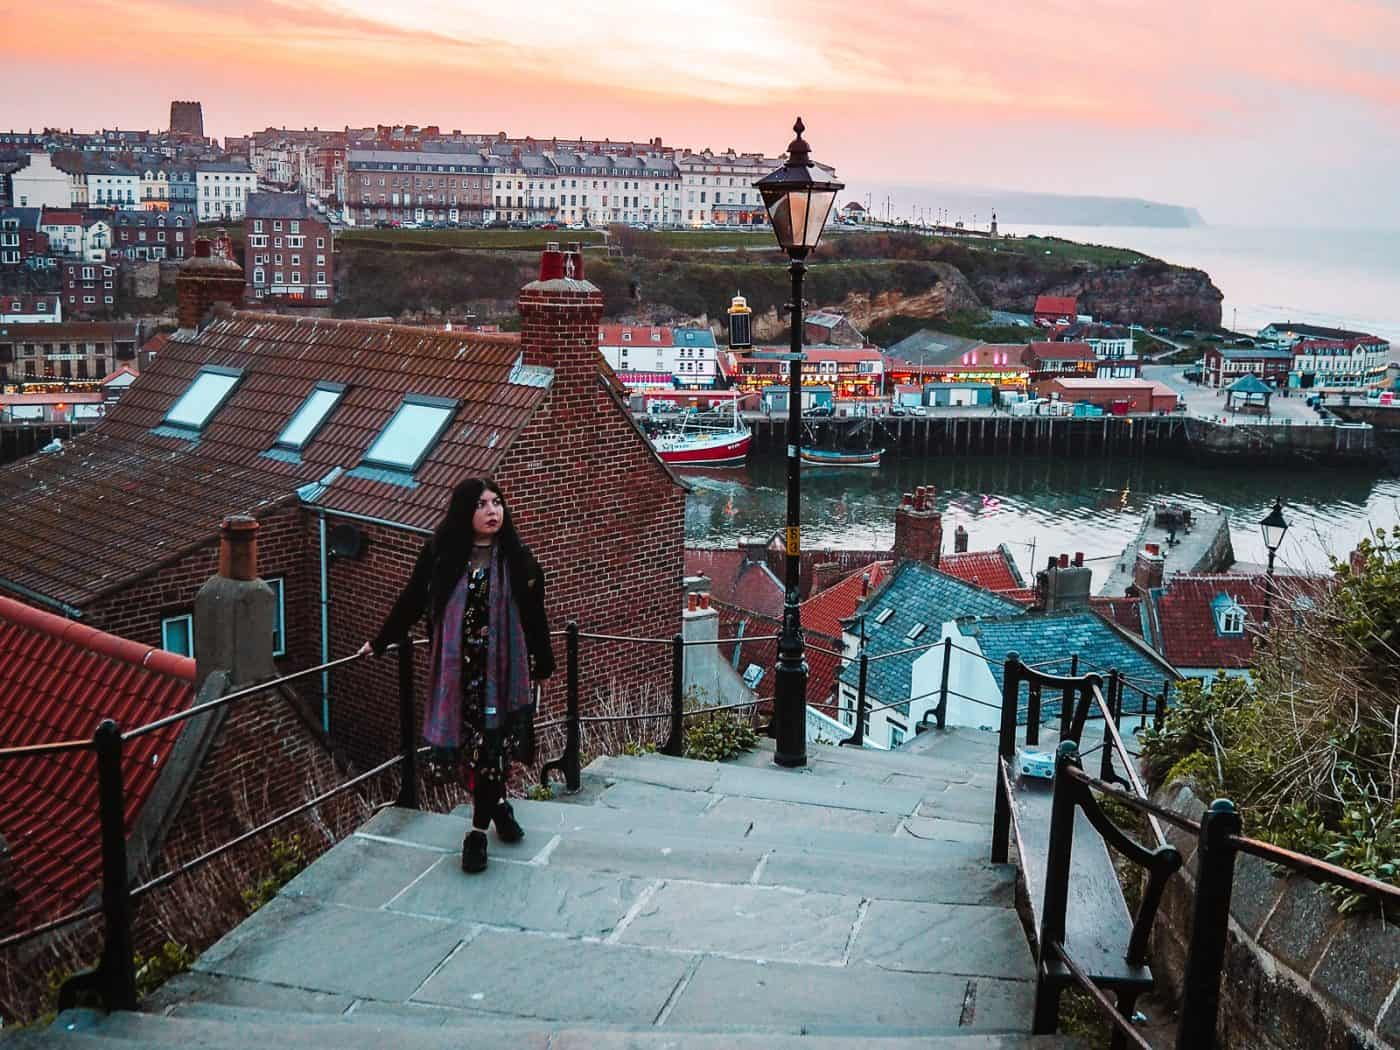 199 steps Whitby - instagrammable places in Whitby photography spots